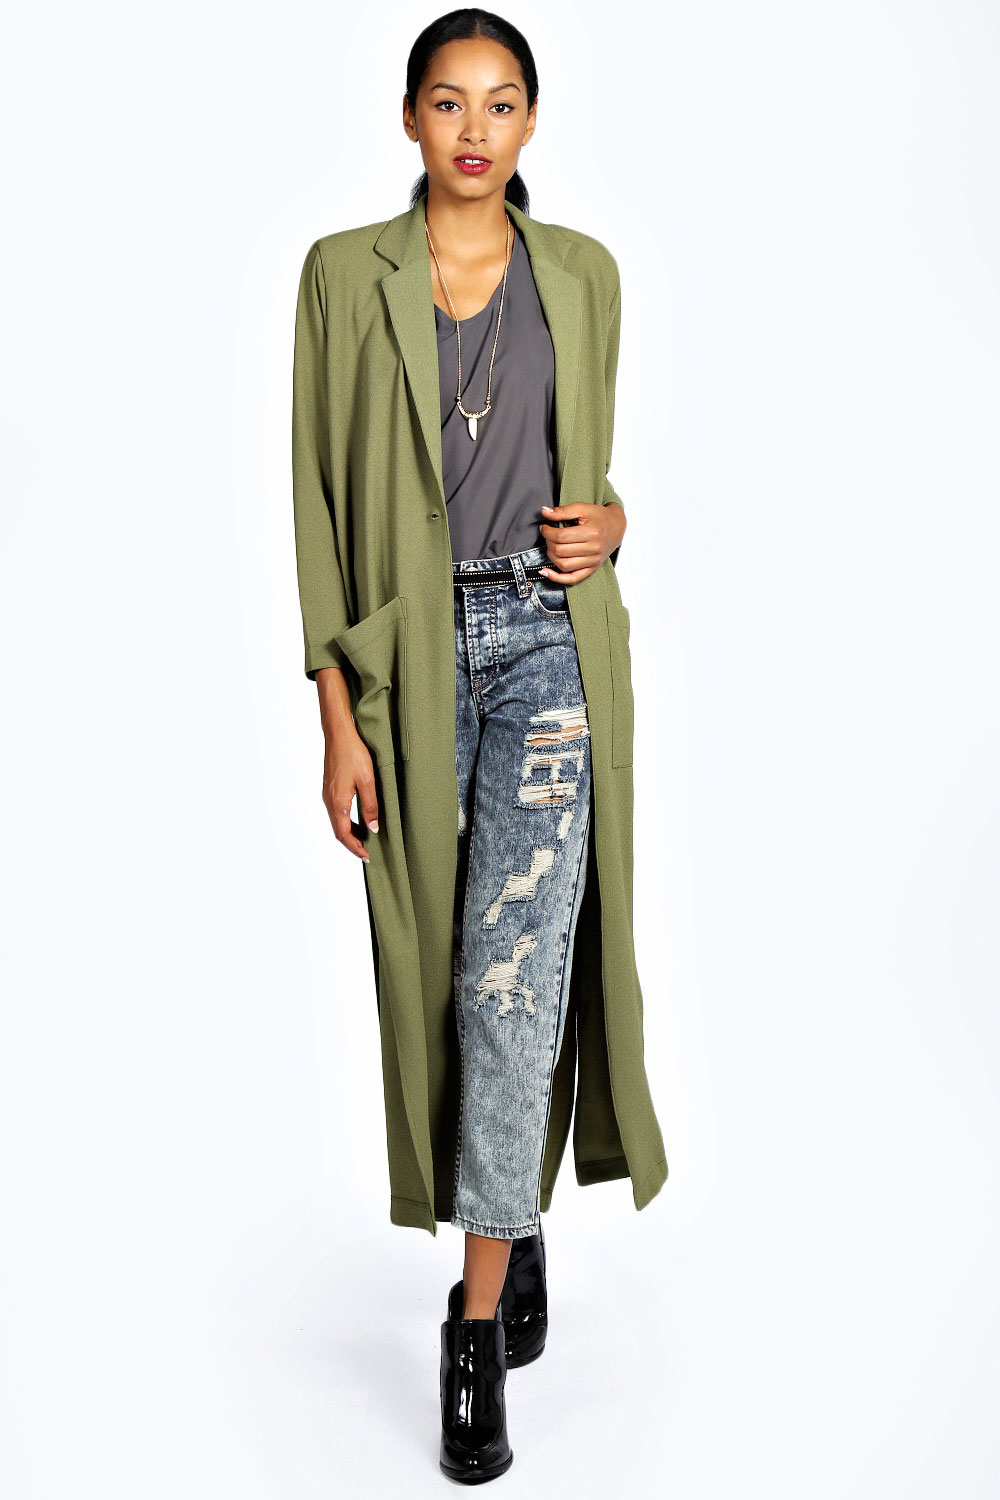 boohoo womens camille long sleeve full length duster top coat in khaki ebay. Black Bedroom Furniture Sets. Home Design Ideas